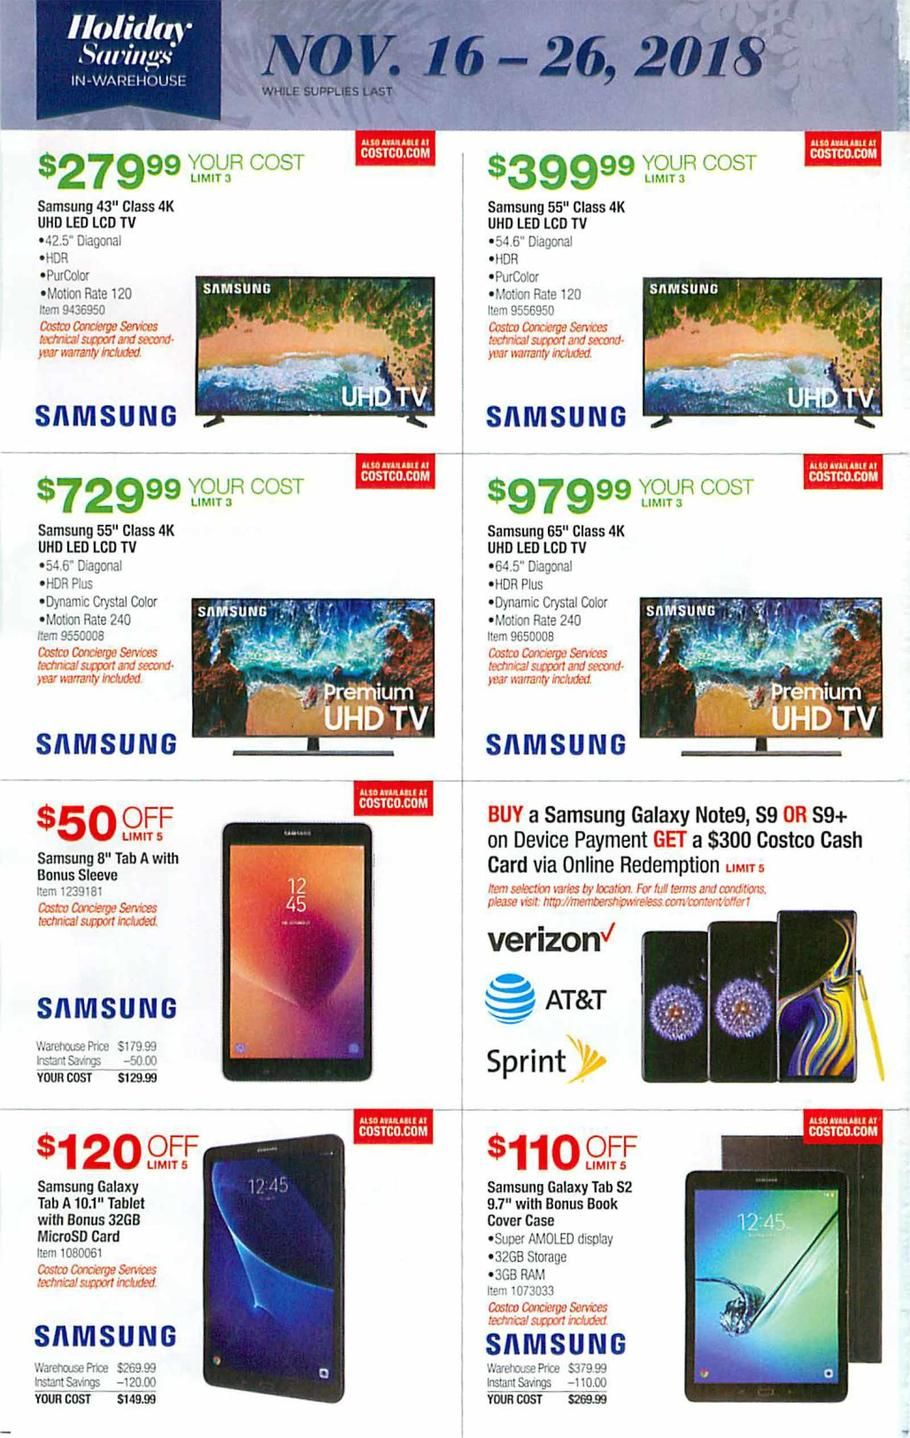 Costco Holiday Book 2018 Ads and Deals Holiday books